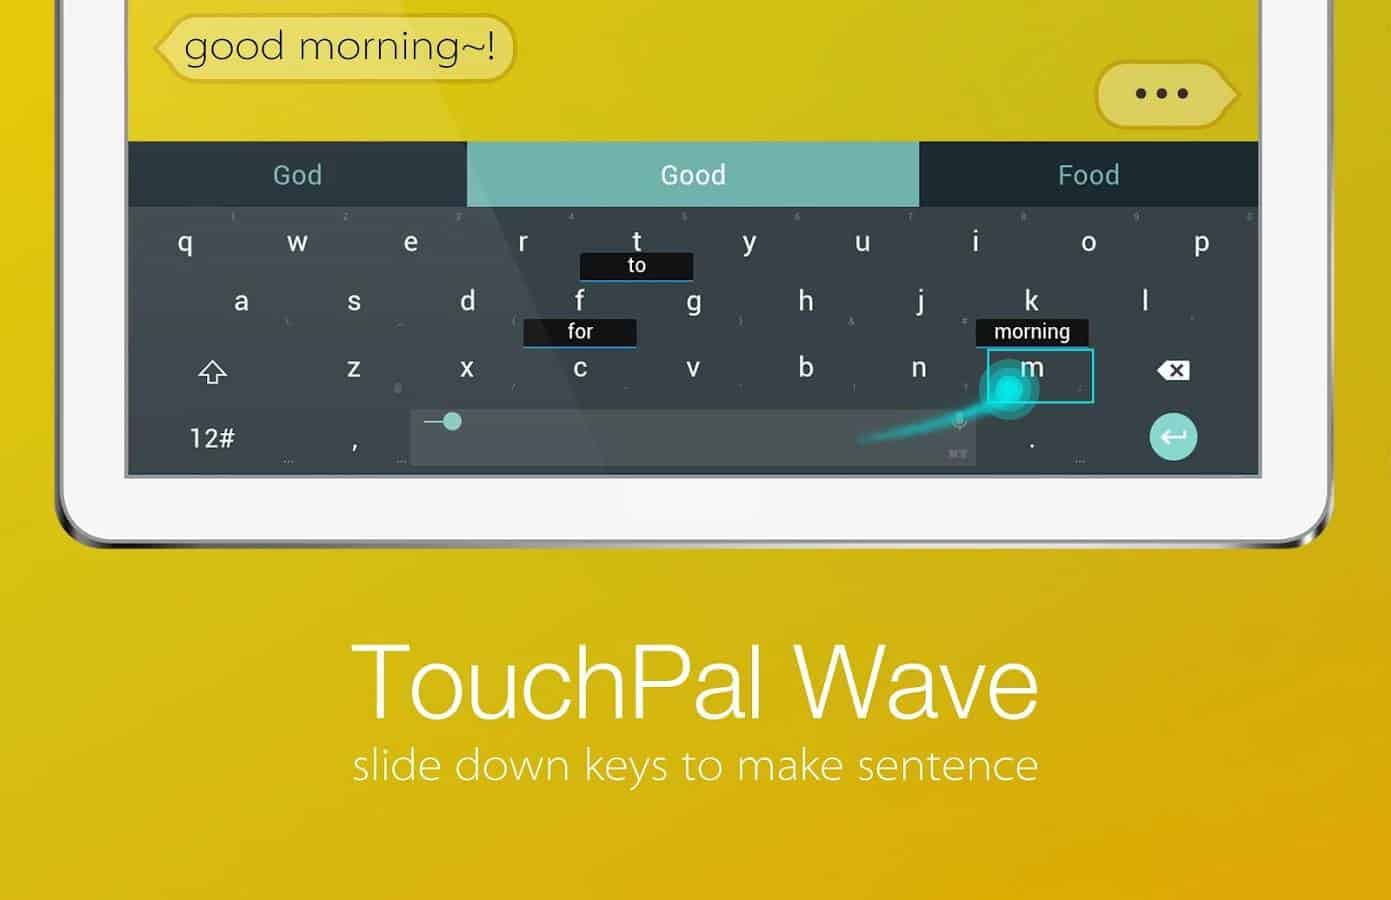 touchpalwave